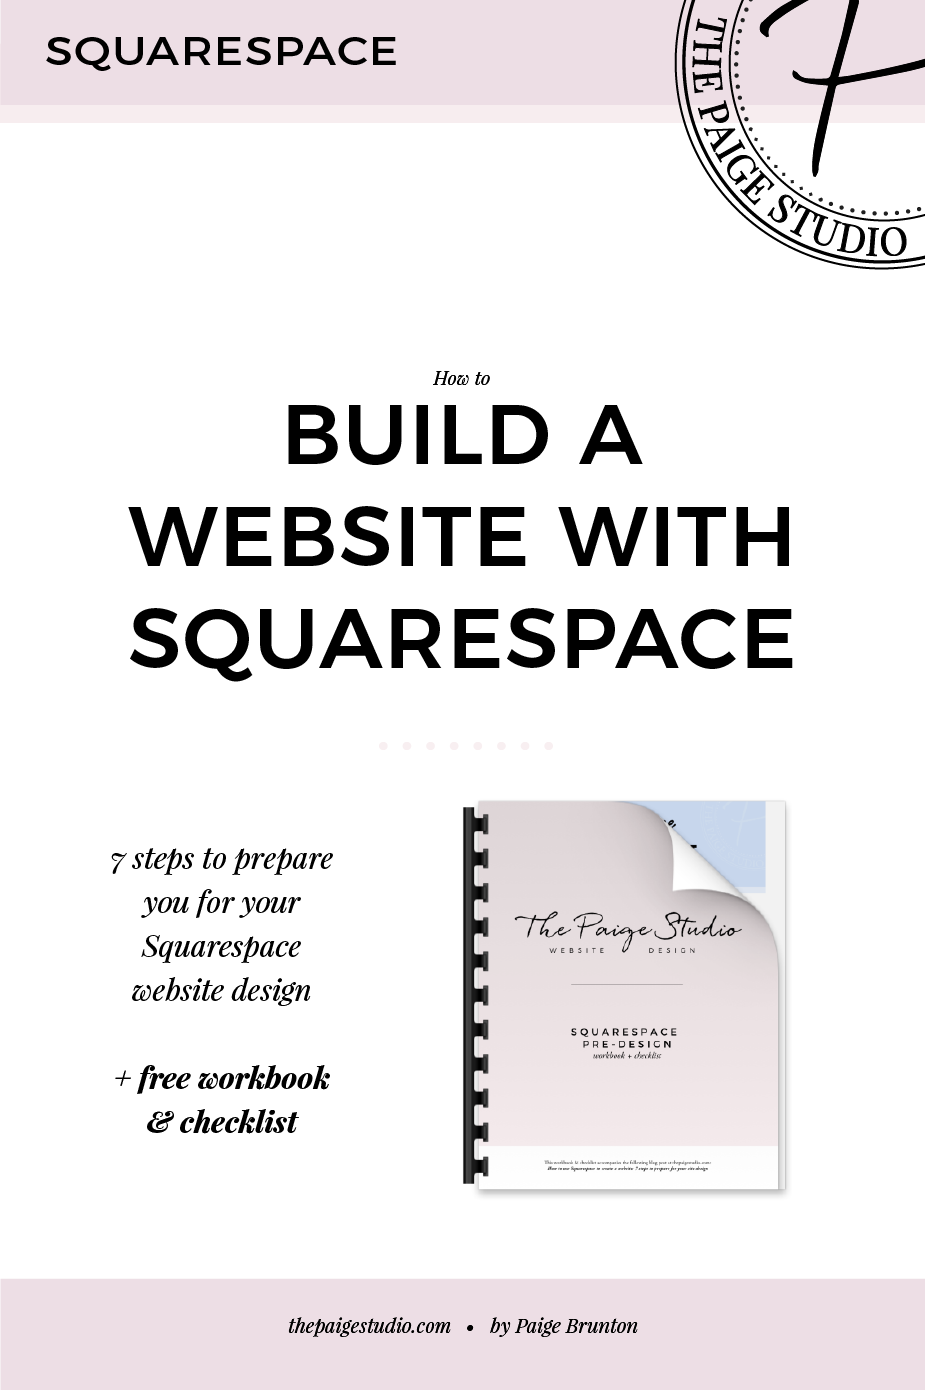 how+to+build+a+website+with+squarespace+tutorial+guide.png